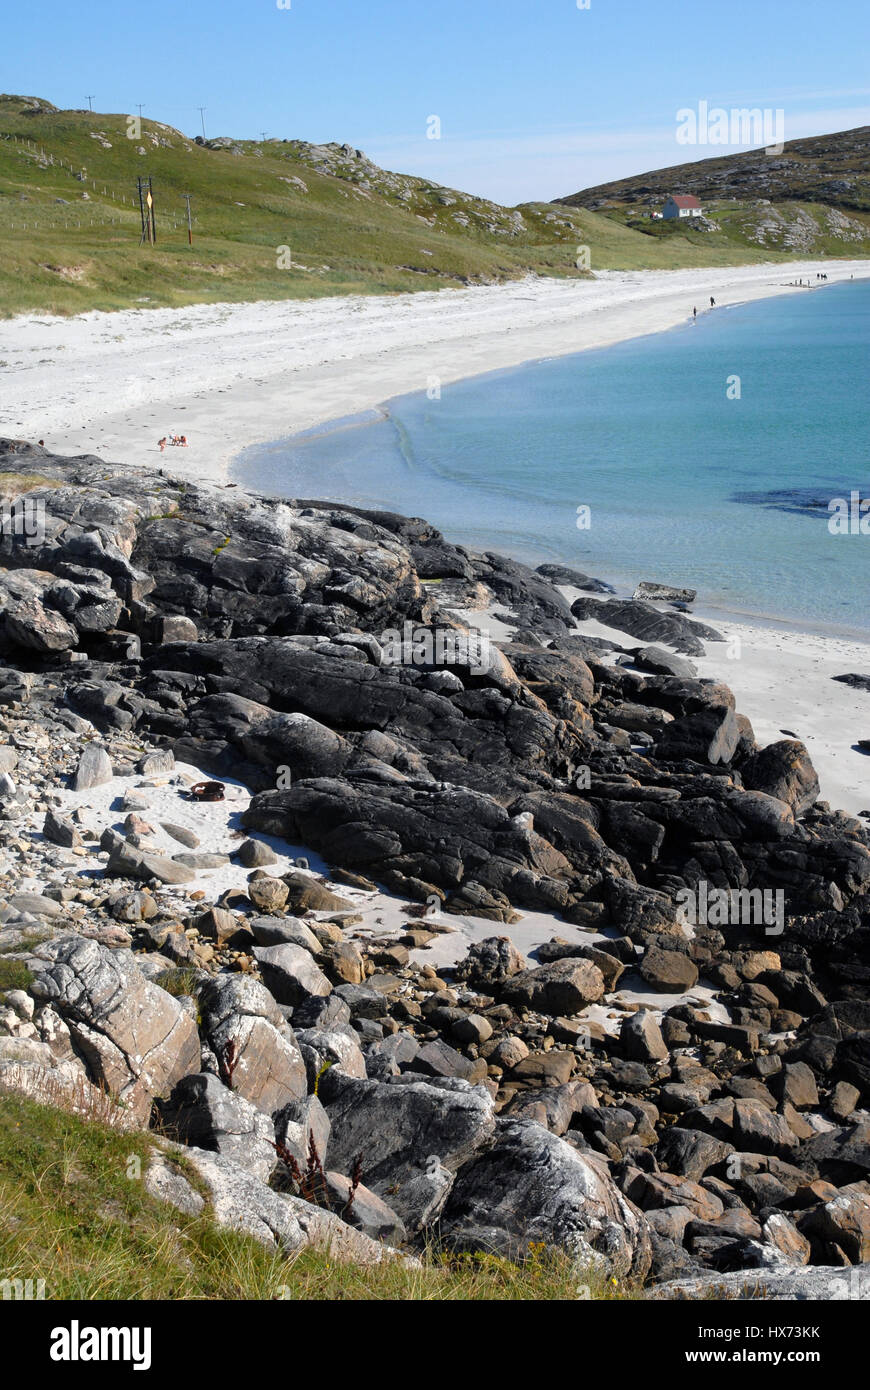 The coast line and beach, Outer Hebrides, South Uist, Scotland, UK - Stock Image